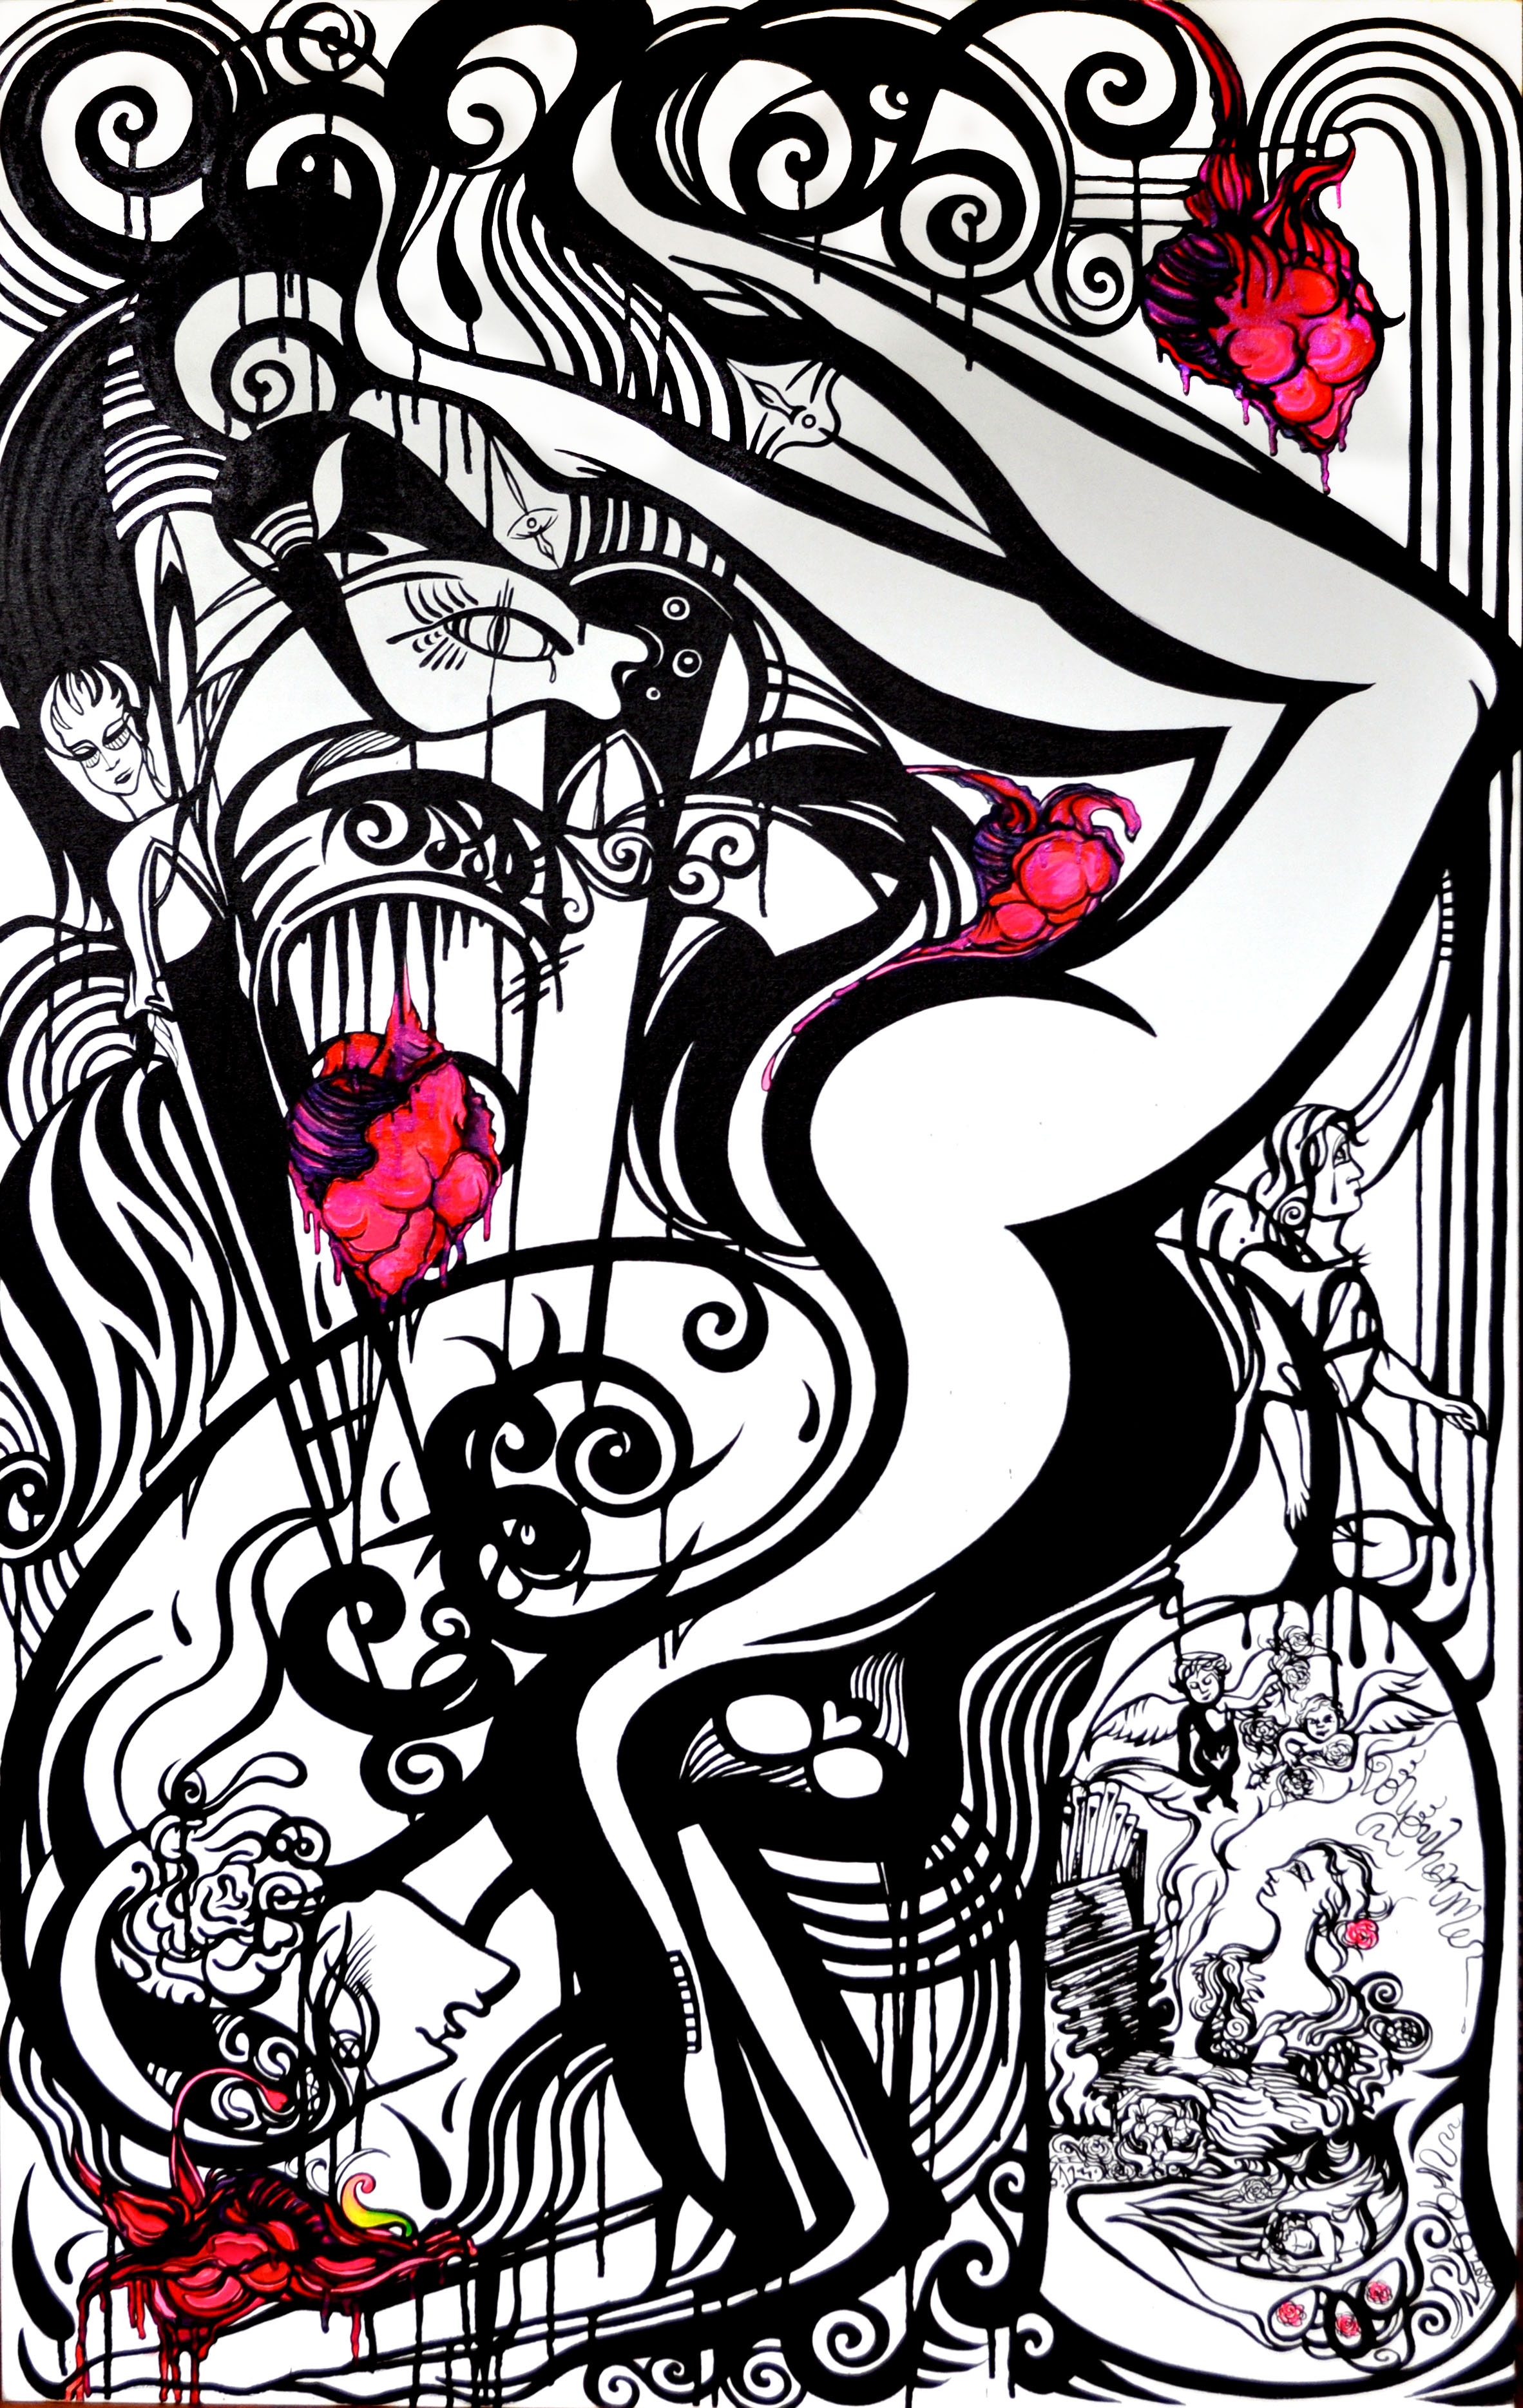 Grand Piano    India Ink & Gouache on Canvas   4'x6'   2010